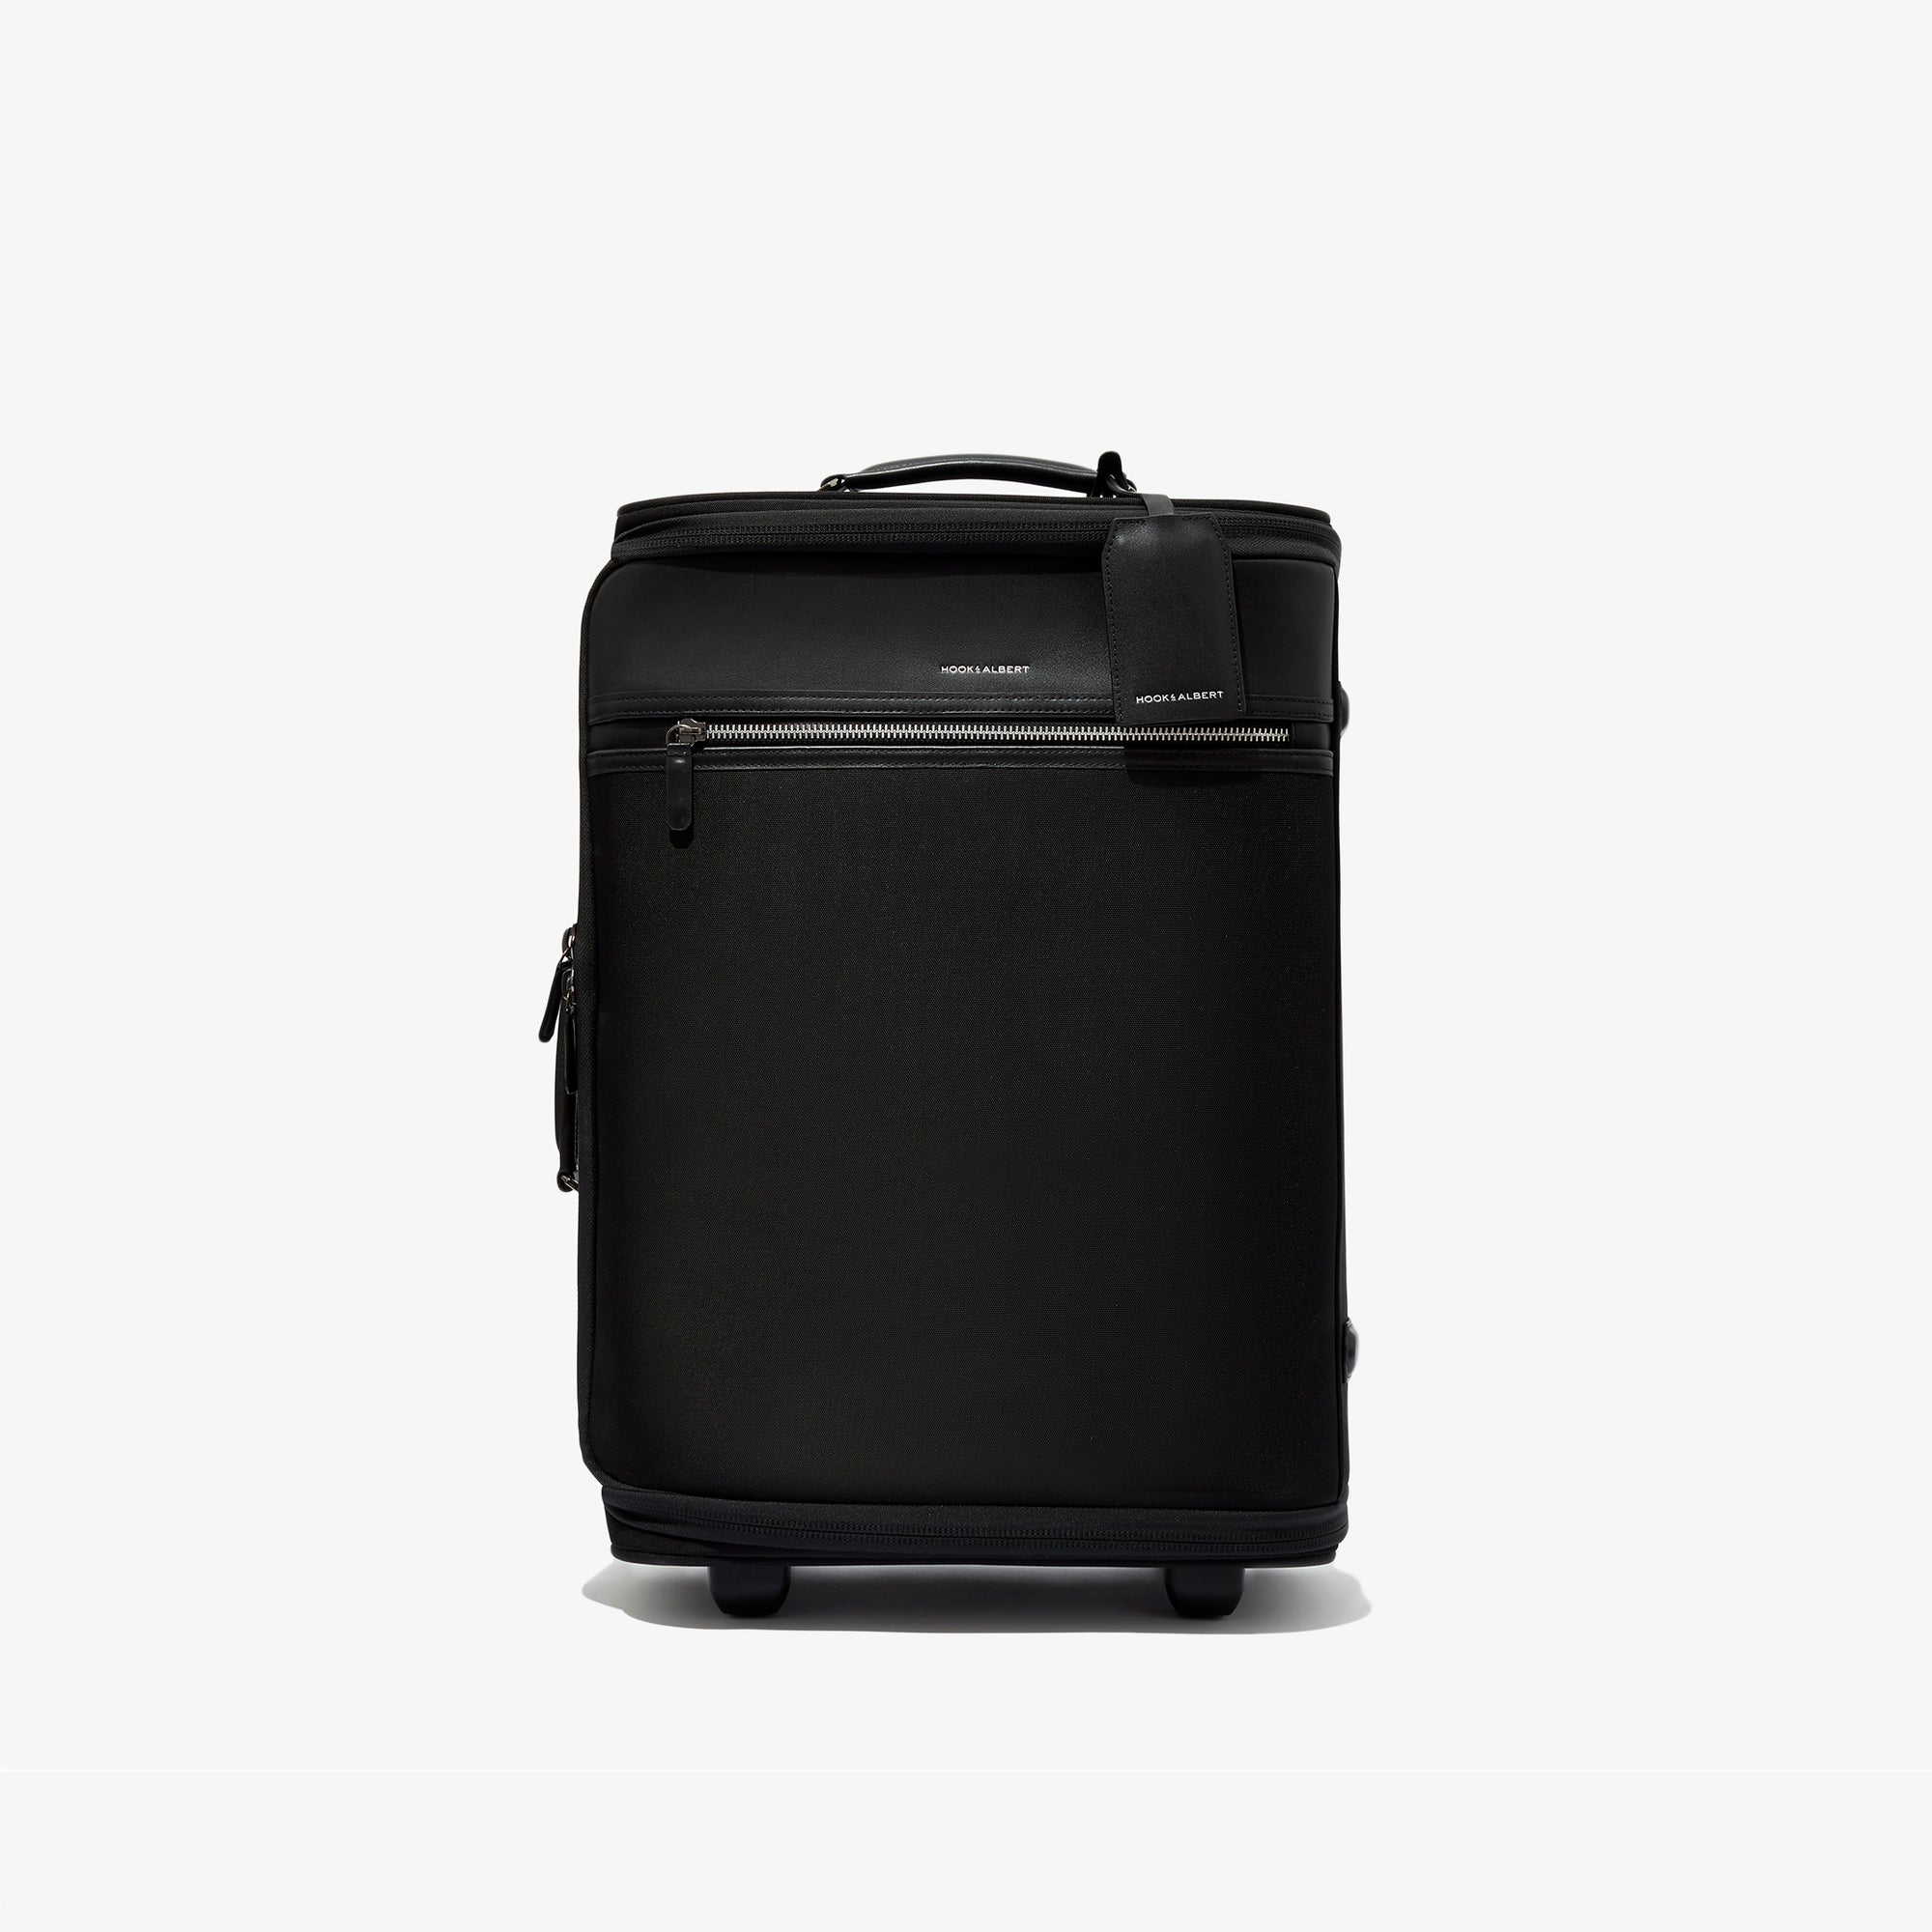 The Black Garment Luggage Carry-On travel product recommended by Nicolette Stern on Lifney.